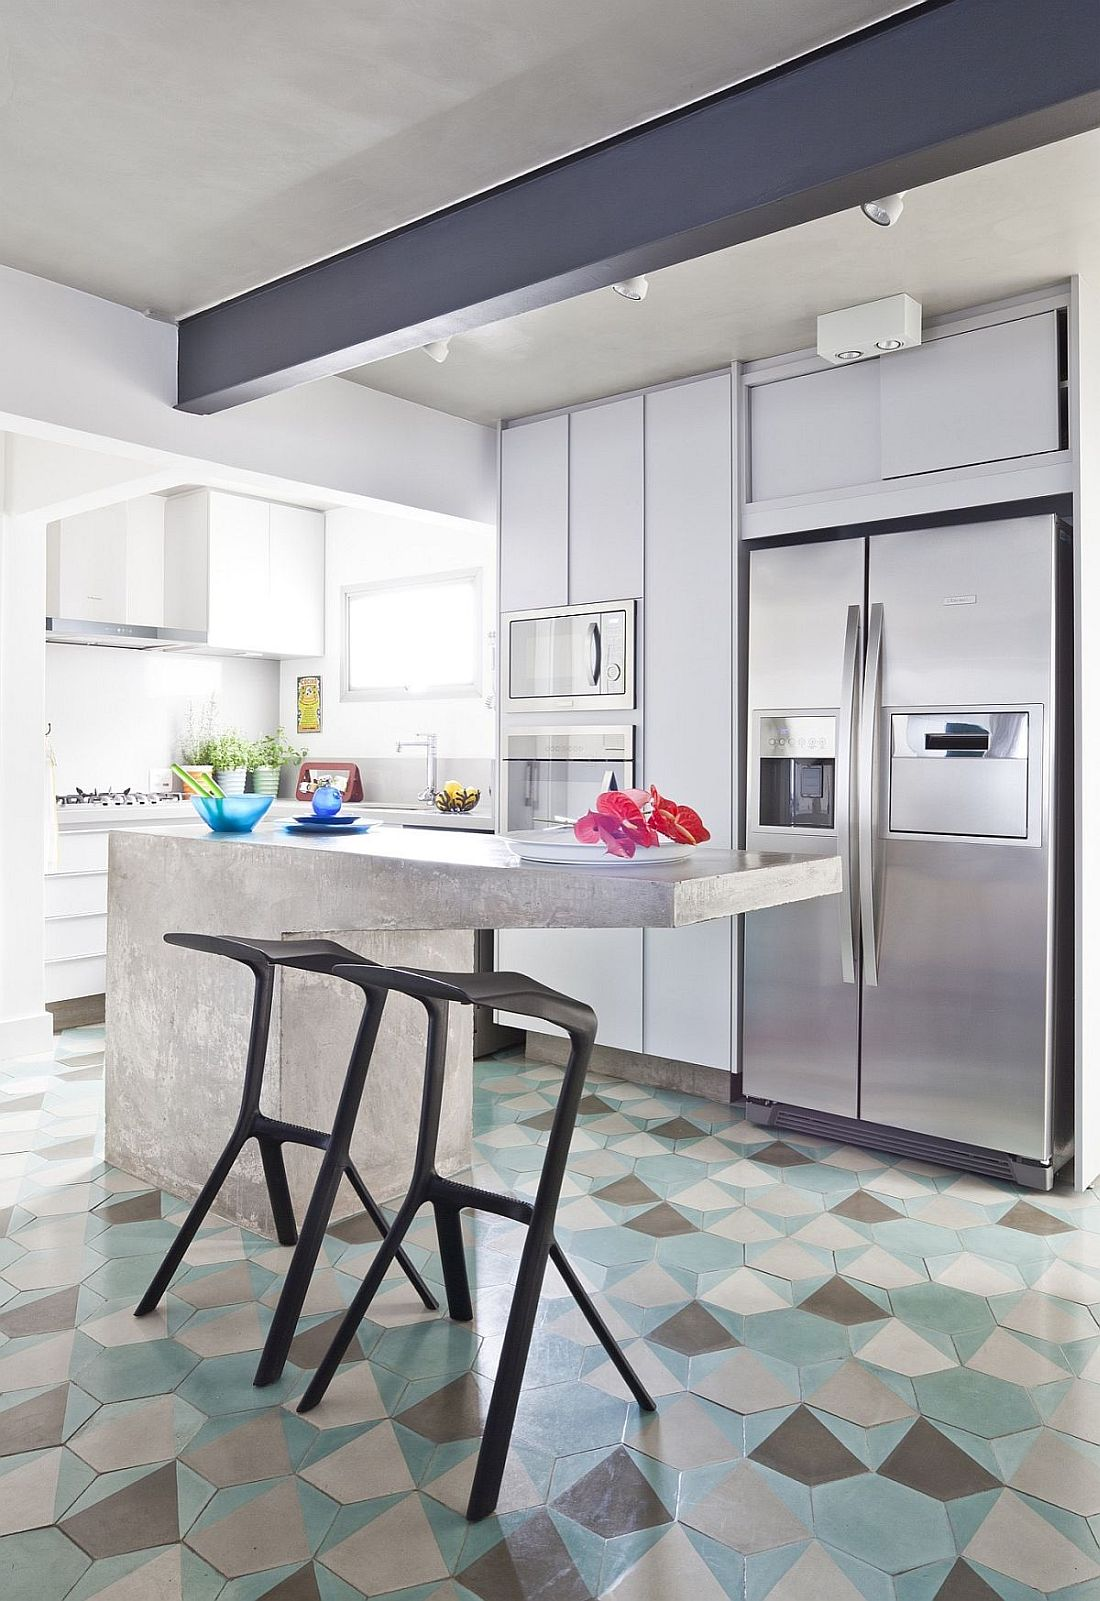 10 Hexagonal Tiles Ideas for Kitchen Backsplash, Floor and More